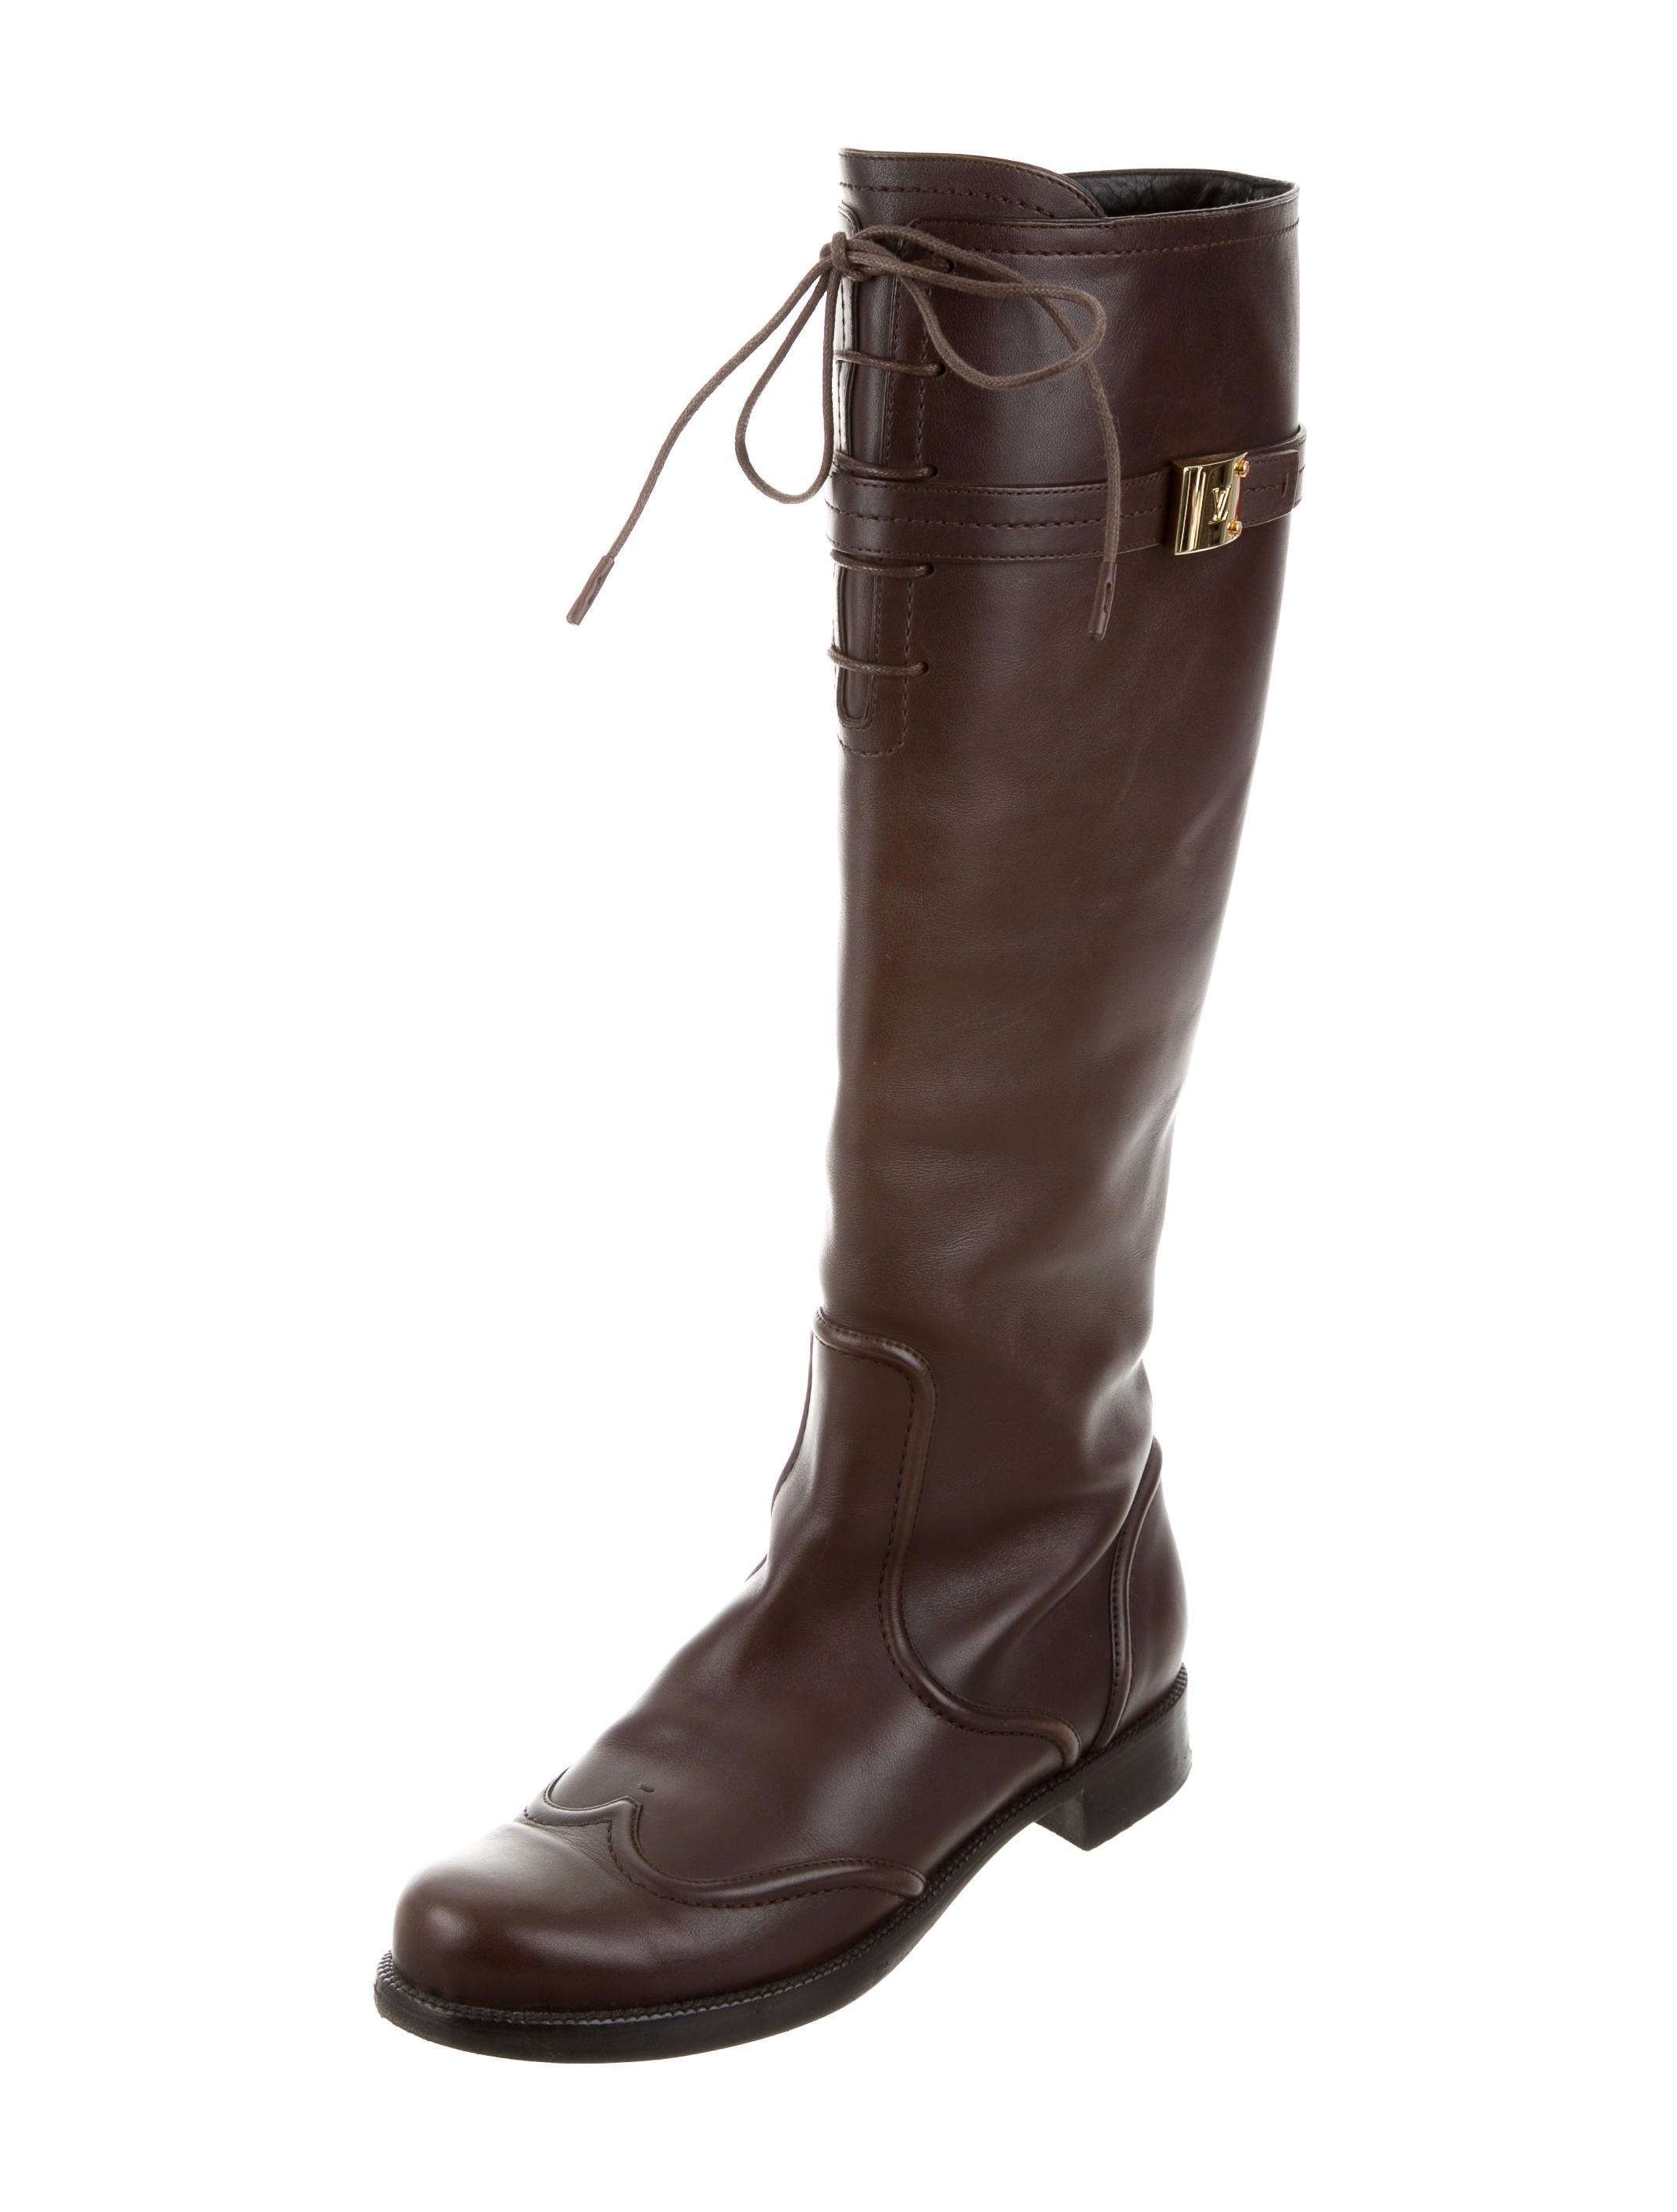 louis vuitton leather knee high boots shoes lou104912